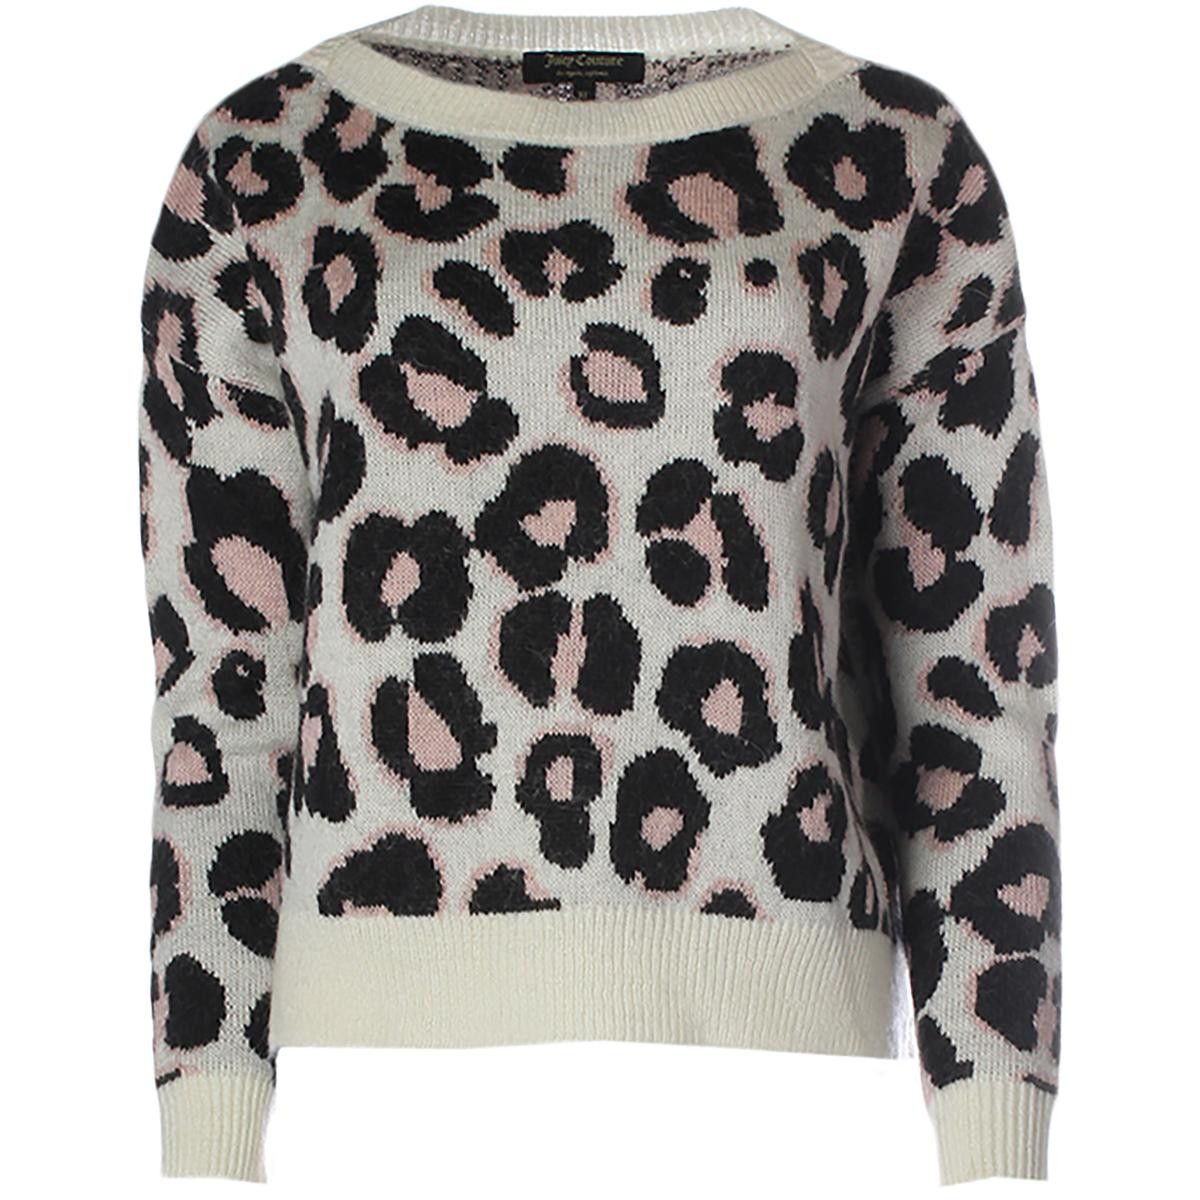 Juicy Couture Black Label Womens Villa Capri Leopard Mohair Pullover Sweater